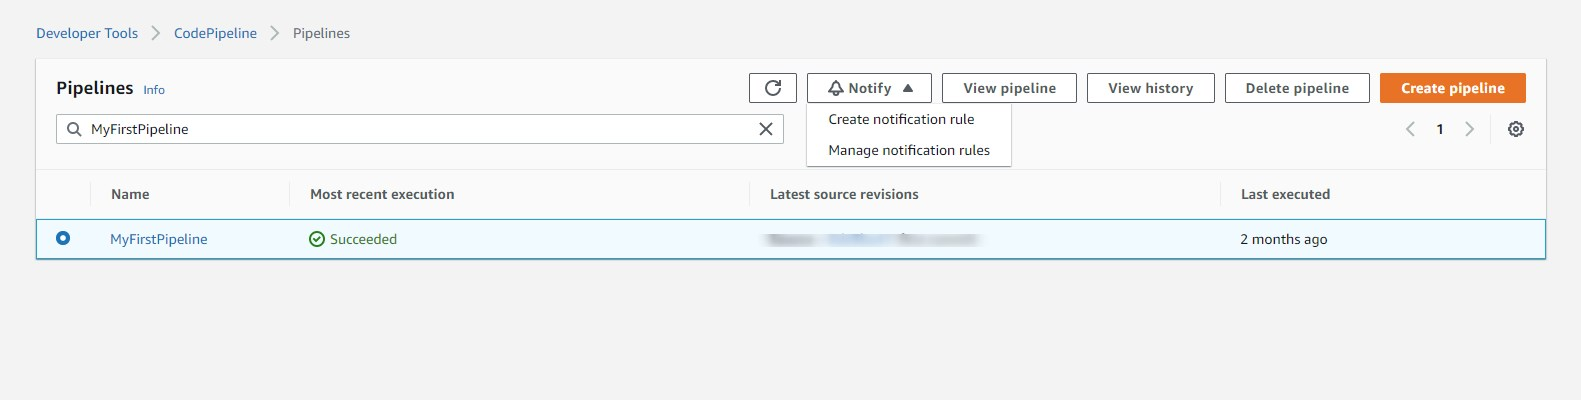 awslagi.com- how to select option to create a notification rule